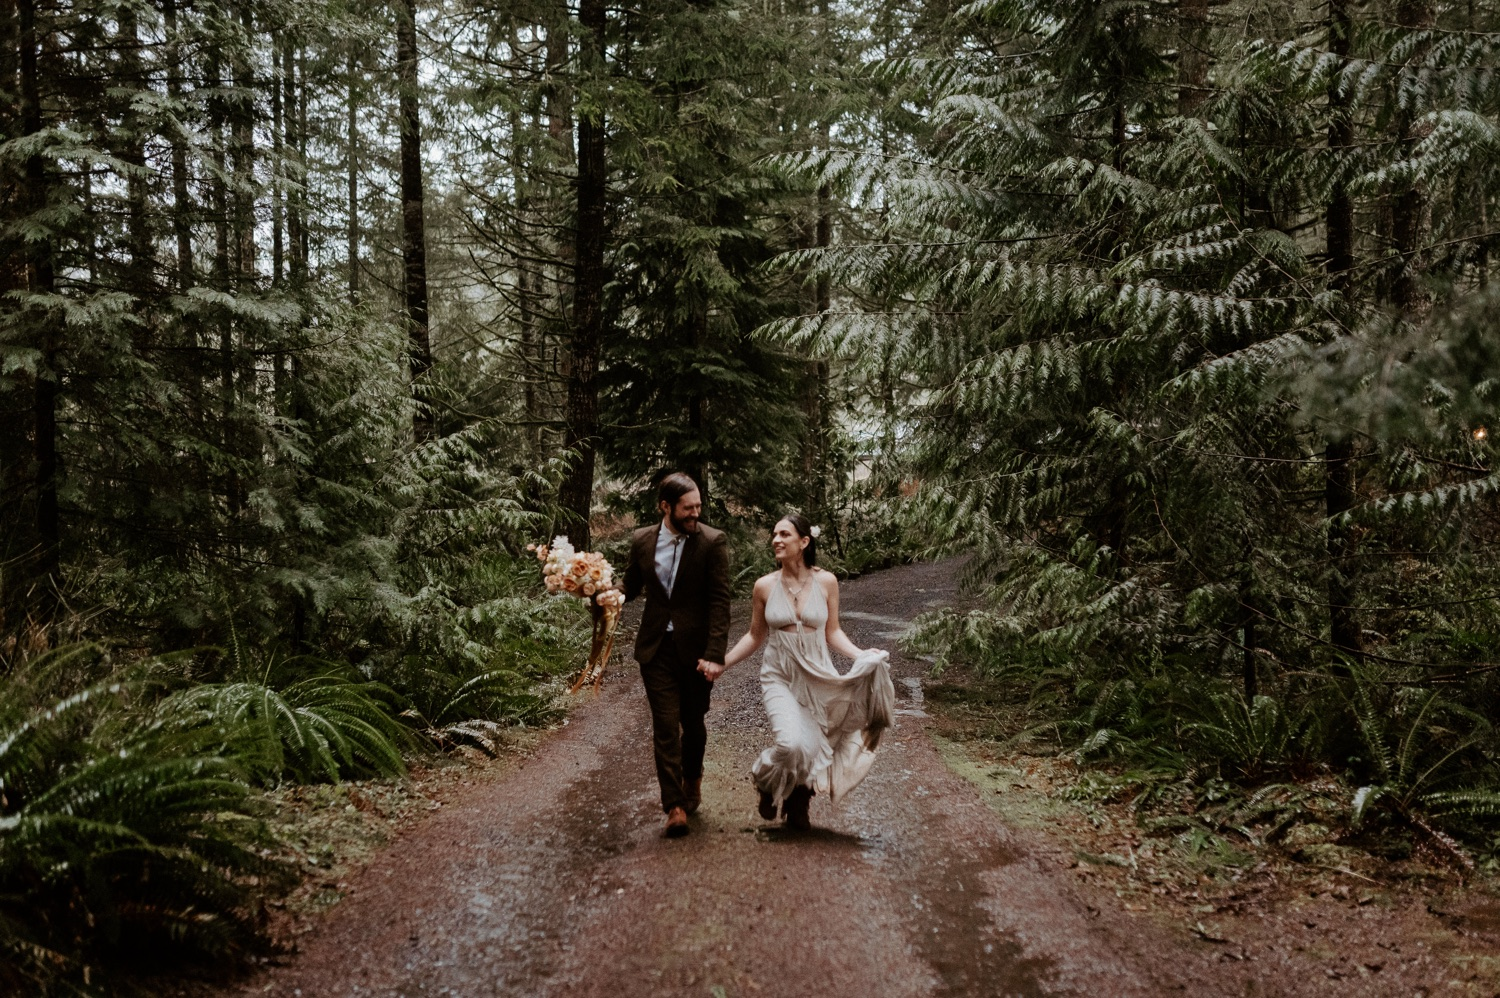 The Woodlands House Sandy Oregon Elopement Portland Elopement Photographer PNW Adventurous Elopement Anais Possamai Photography 034